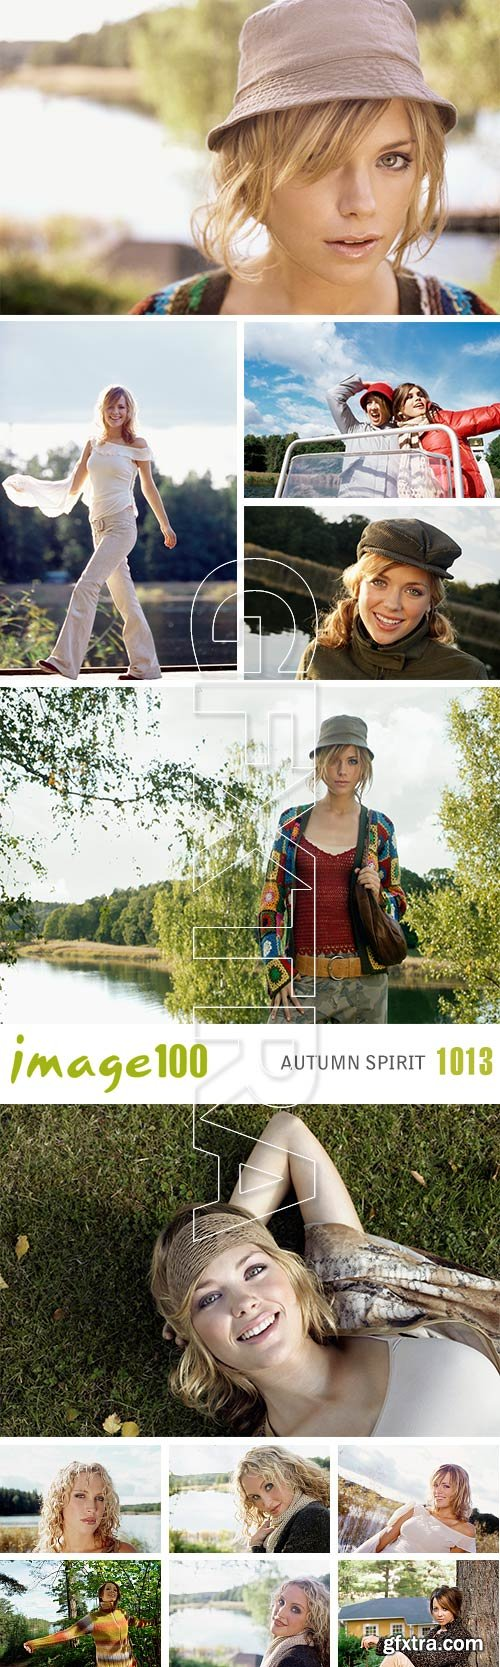 Image100 Vol.1013 Autumn Spirit